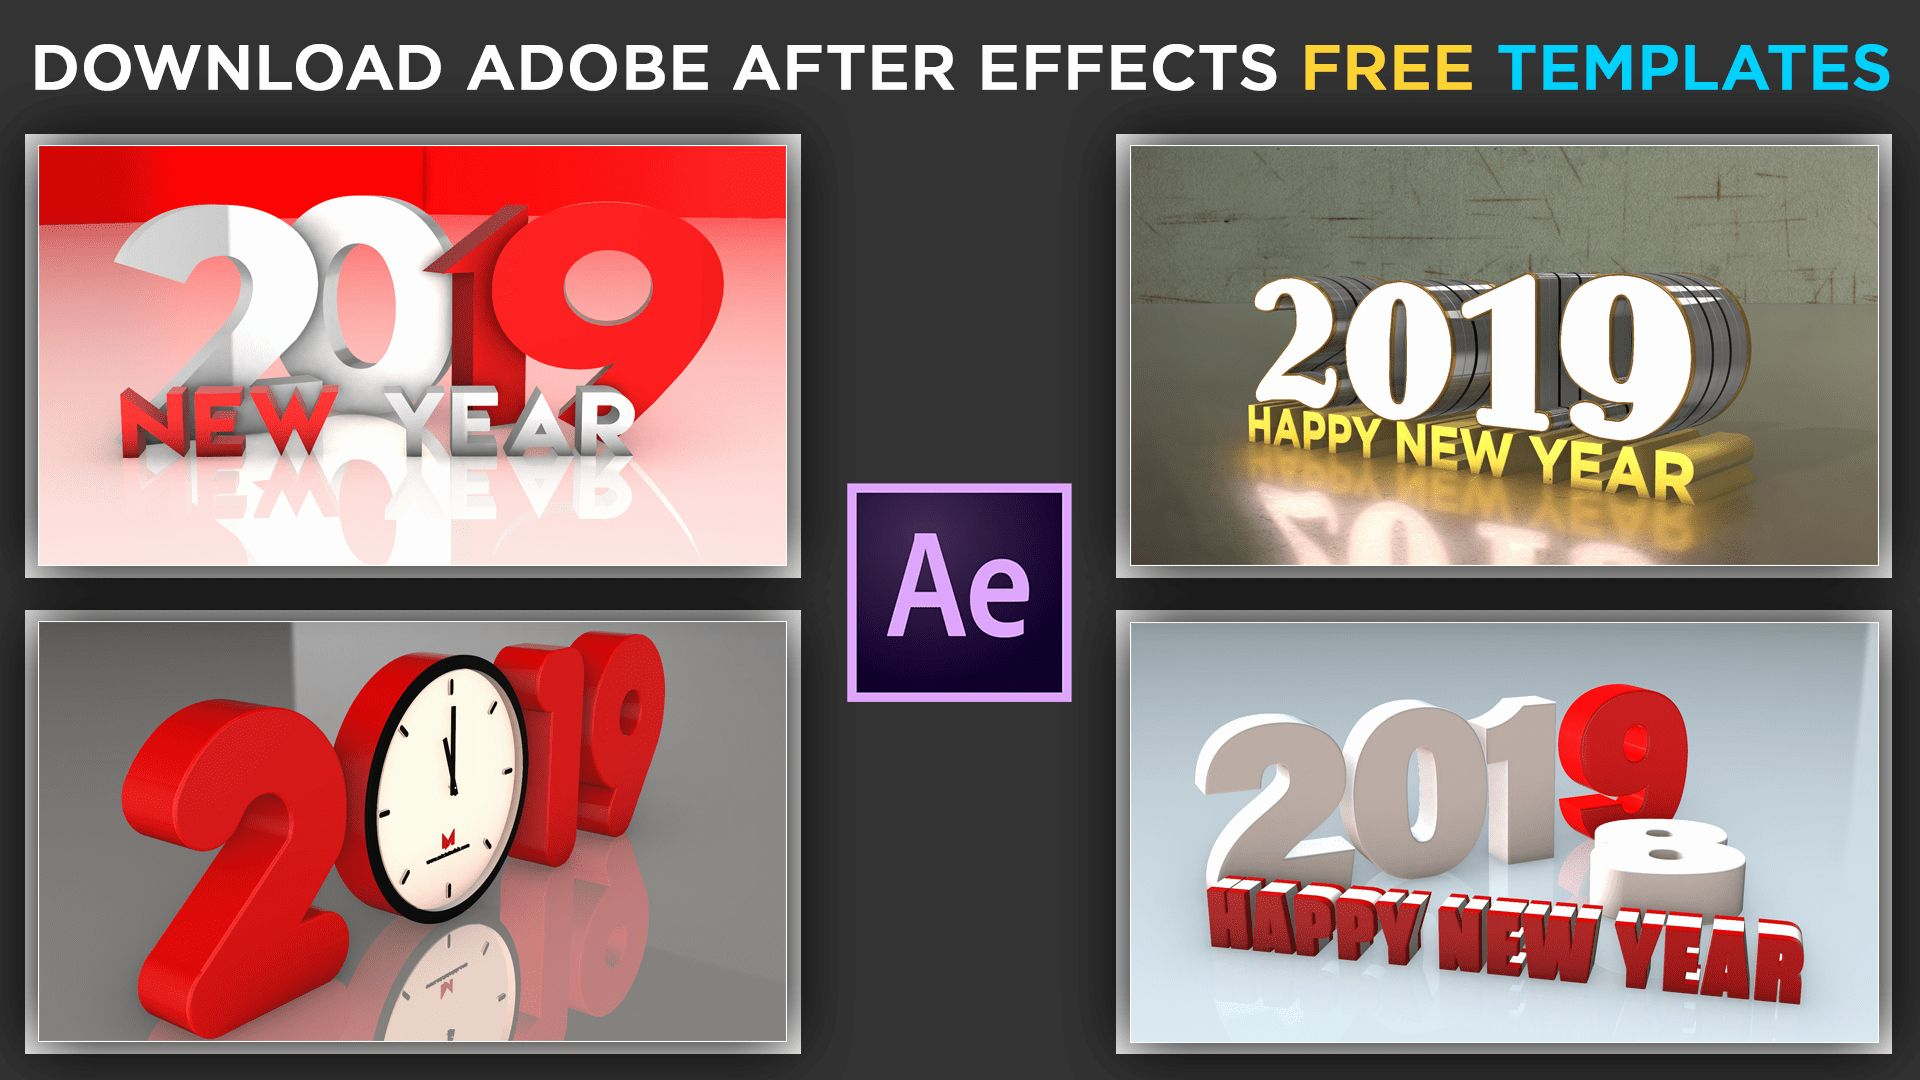 After Effects Template Free Slideshow In 2020 After Effects